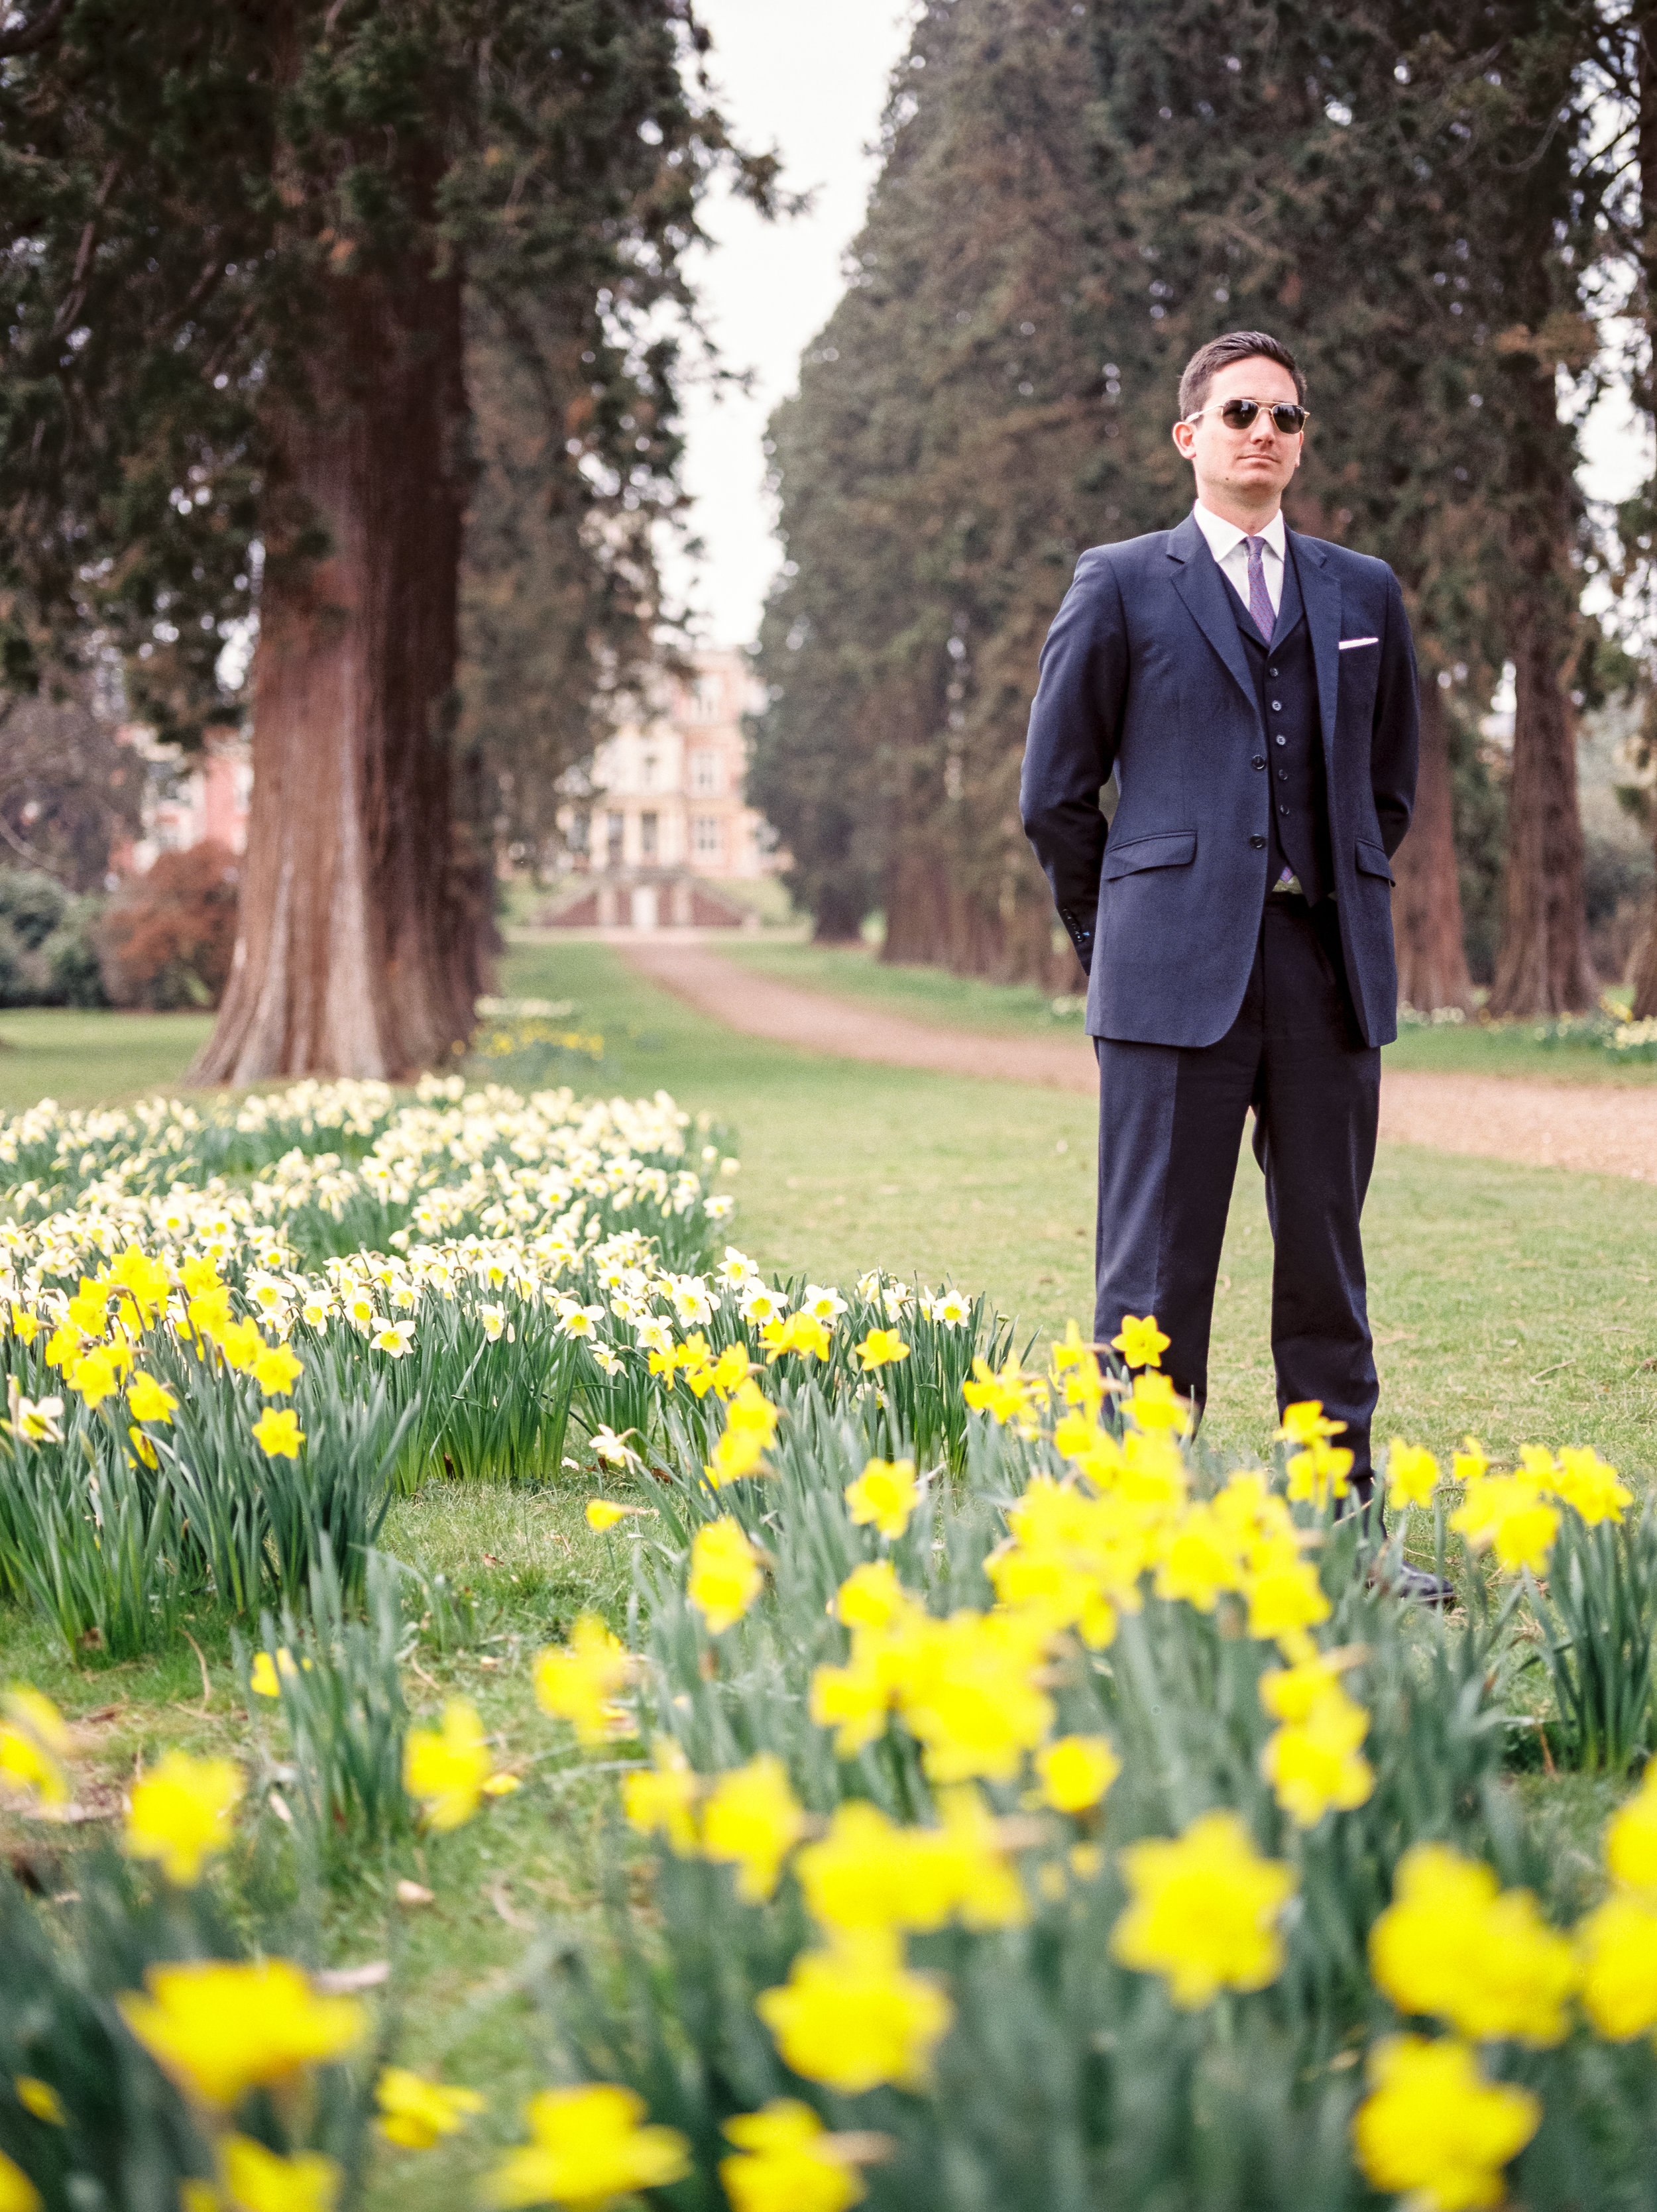 Exploring the grounds - Modern Male Fashion Portrait